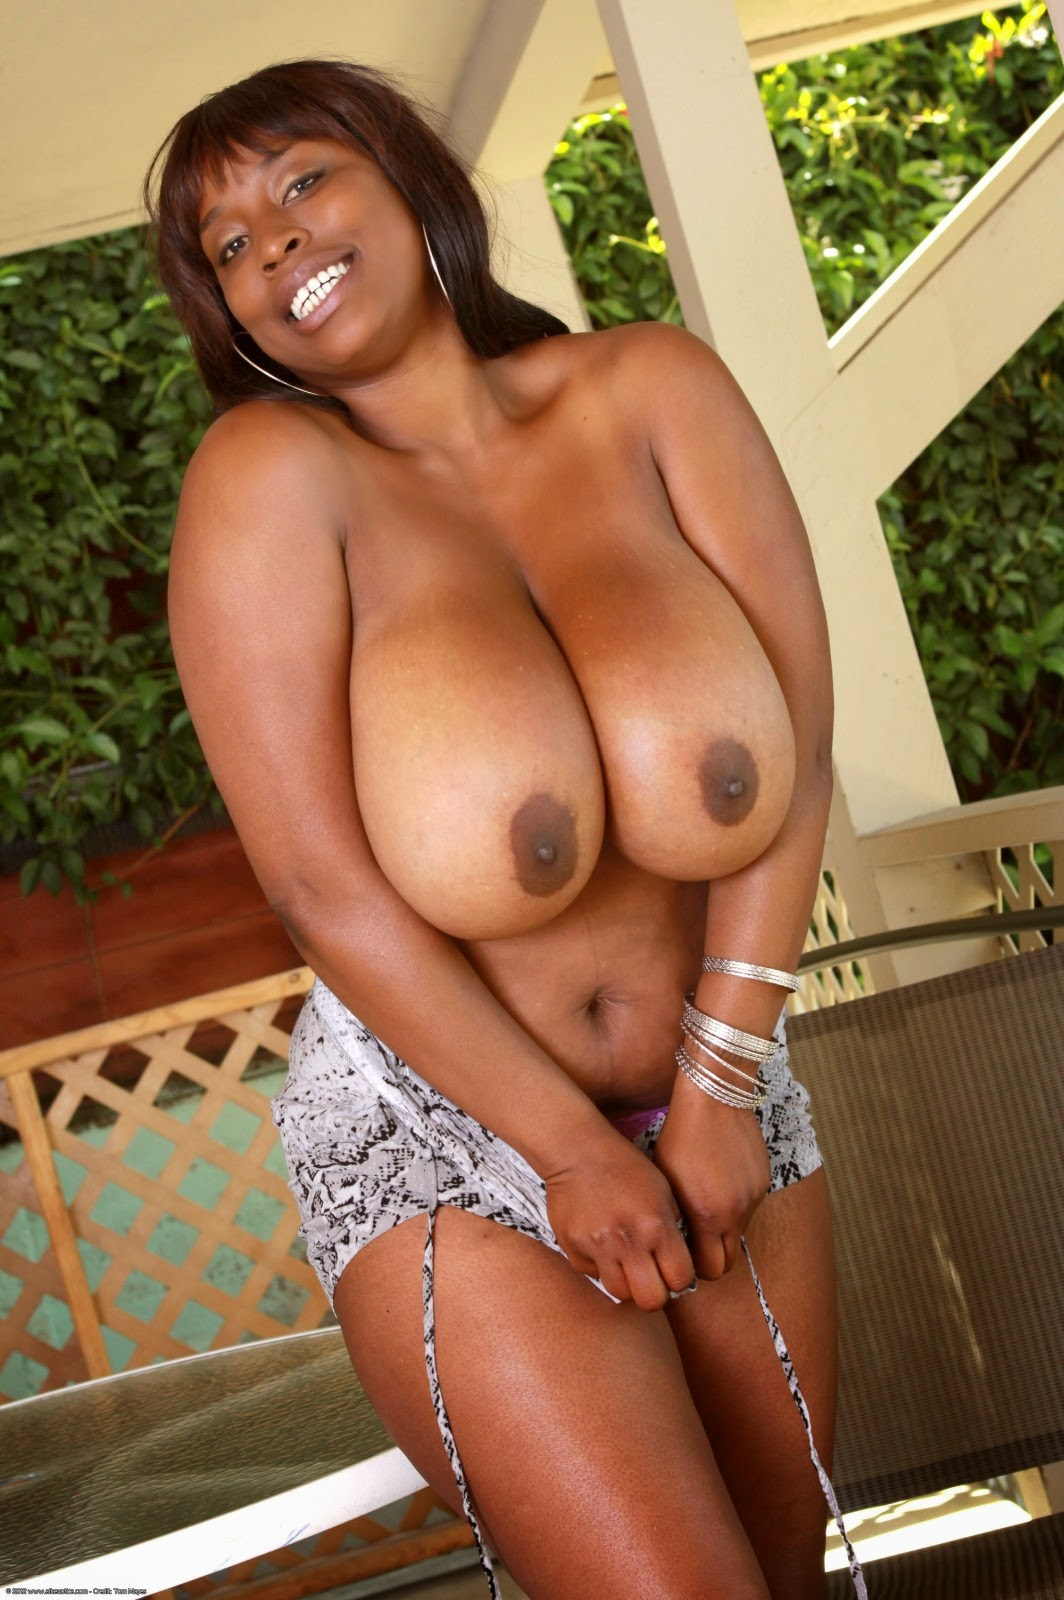 Alicia jackson big black boobs so cute - 2 part 2